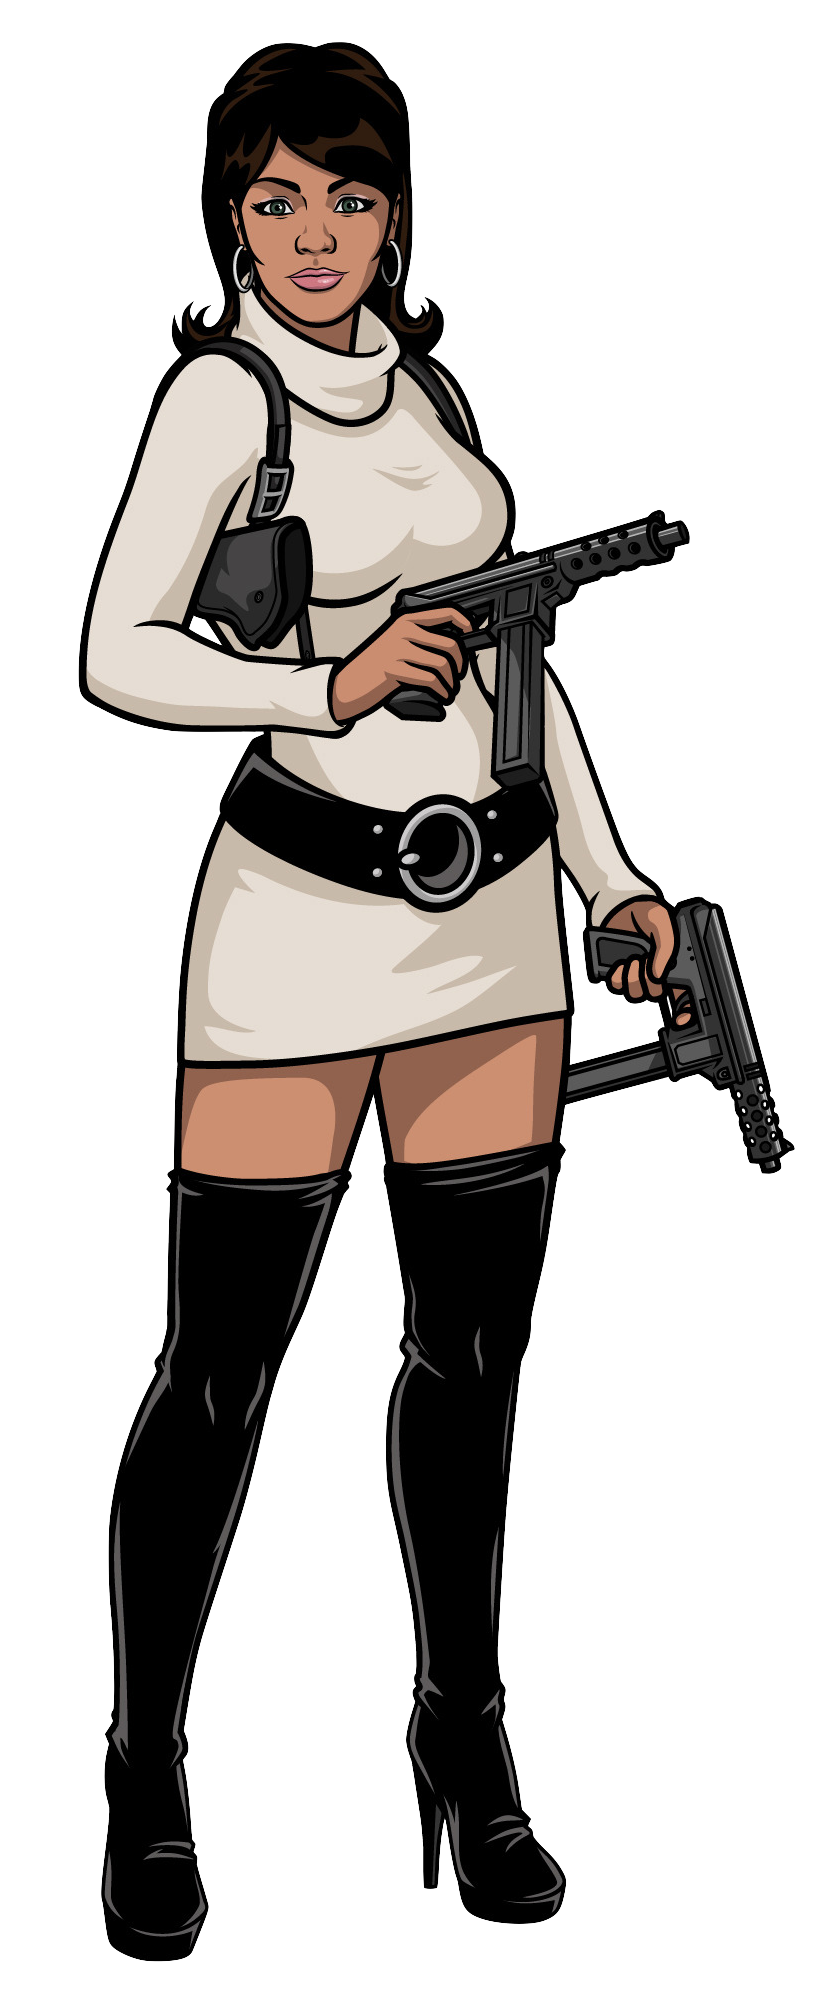 lana kane archer wiki fandom powered by wikia